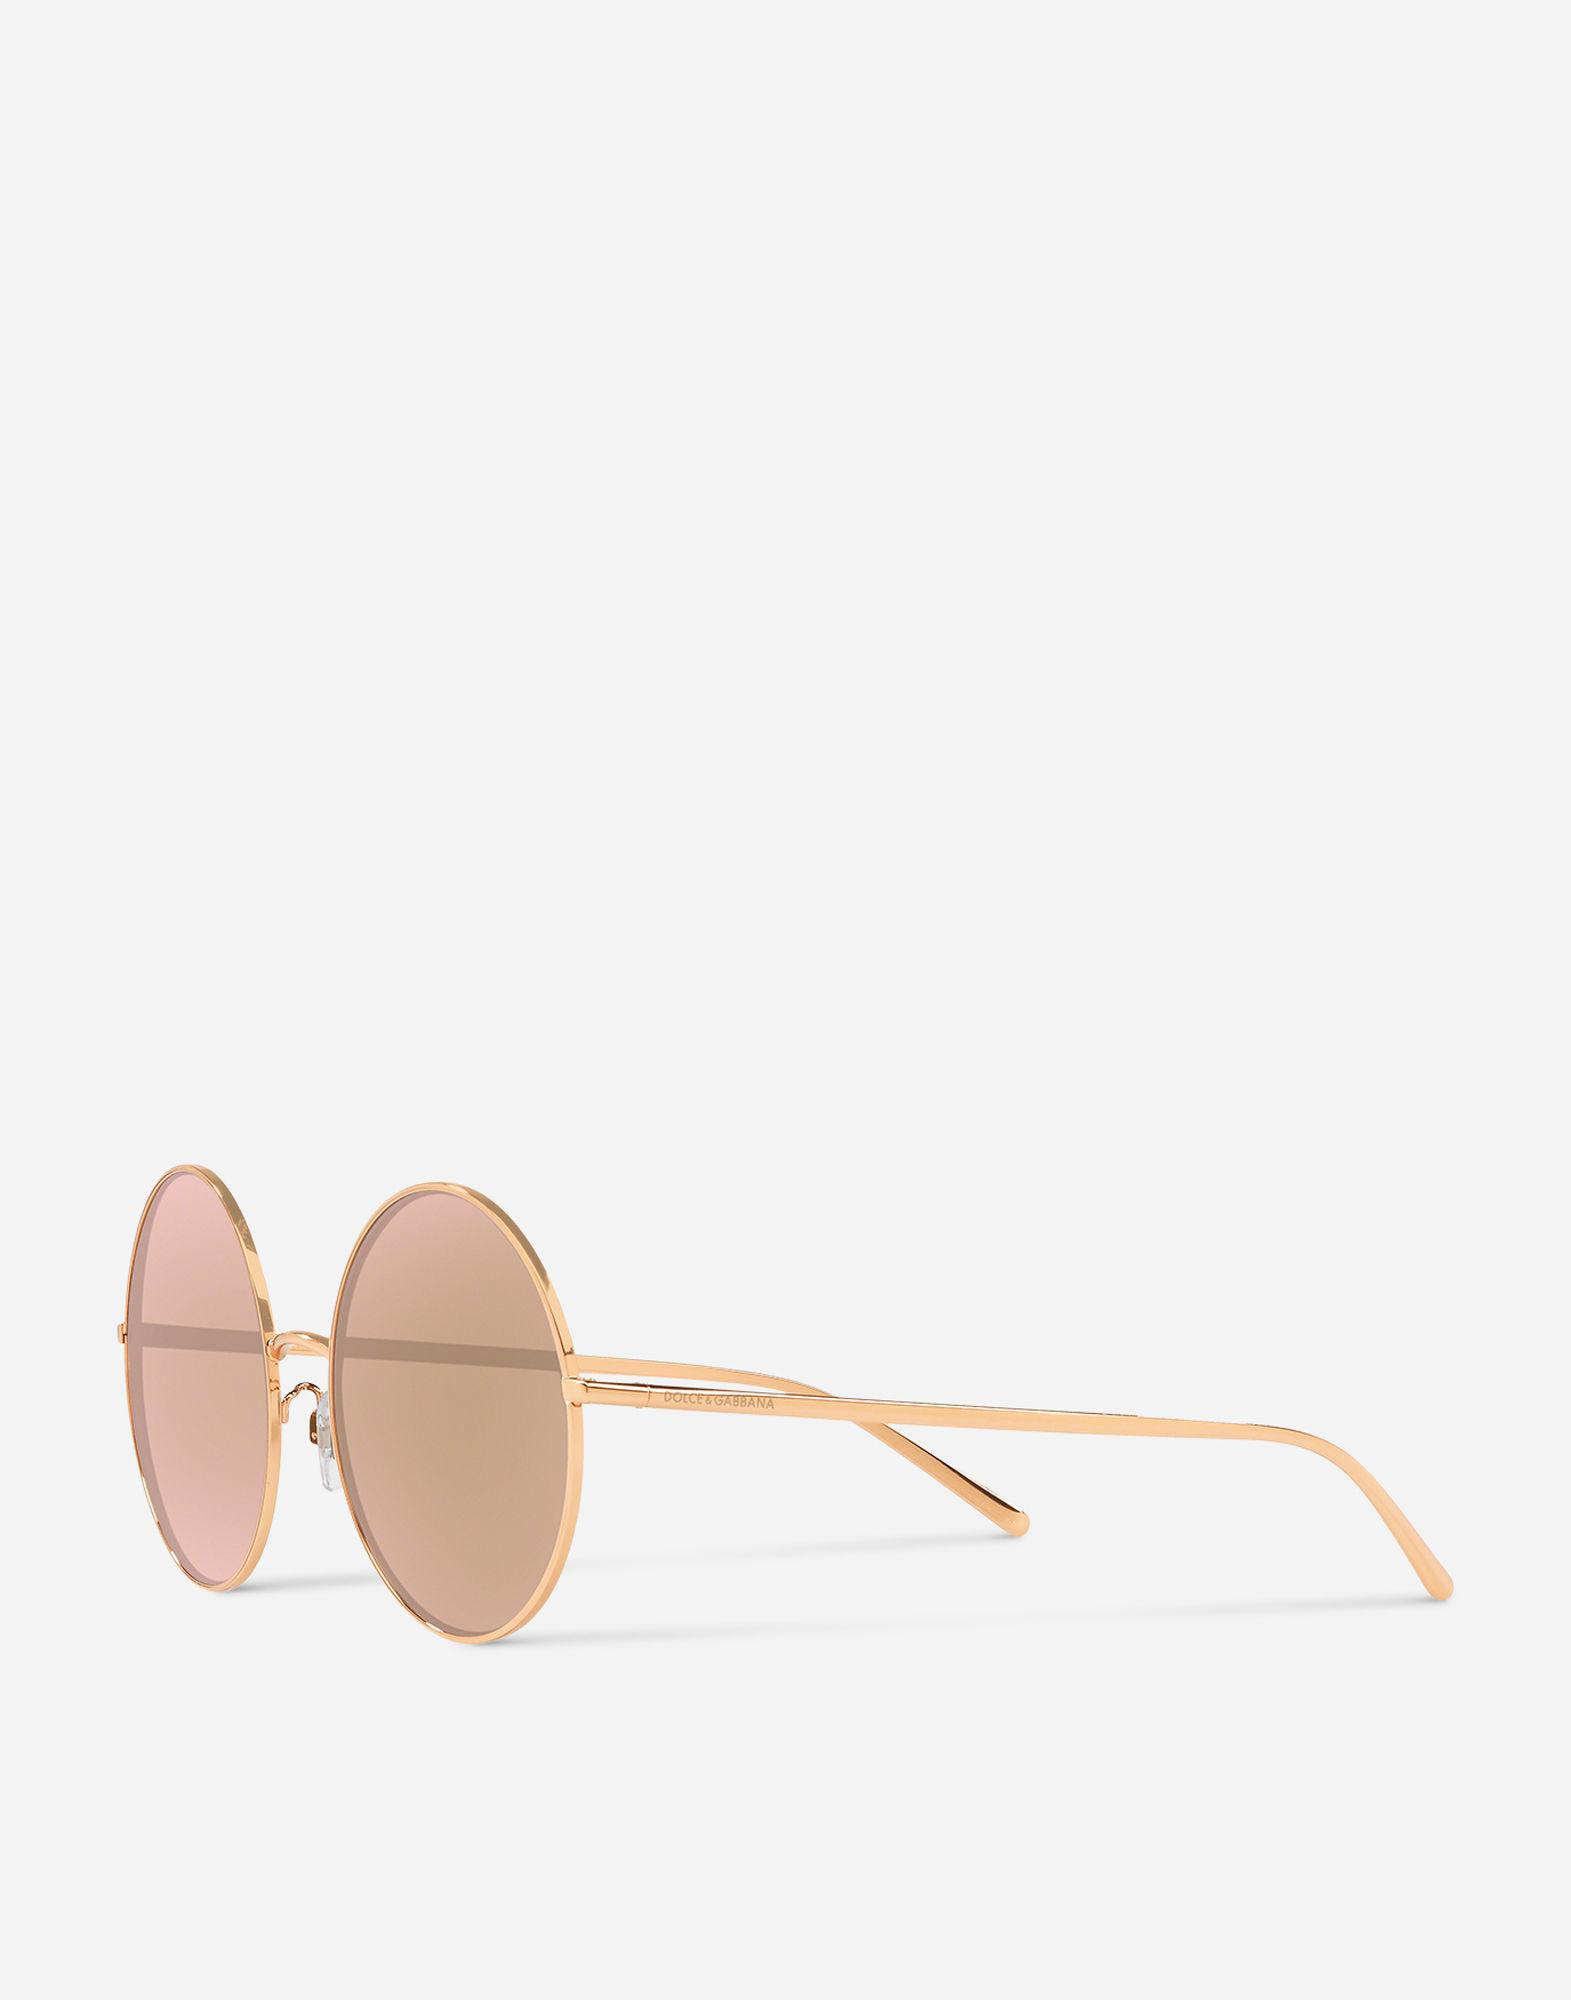 57750e3f45fa Lyst - Dolce   Gabbana Round Gold Plated Sunglasses in Pink